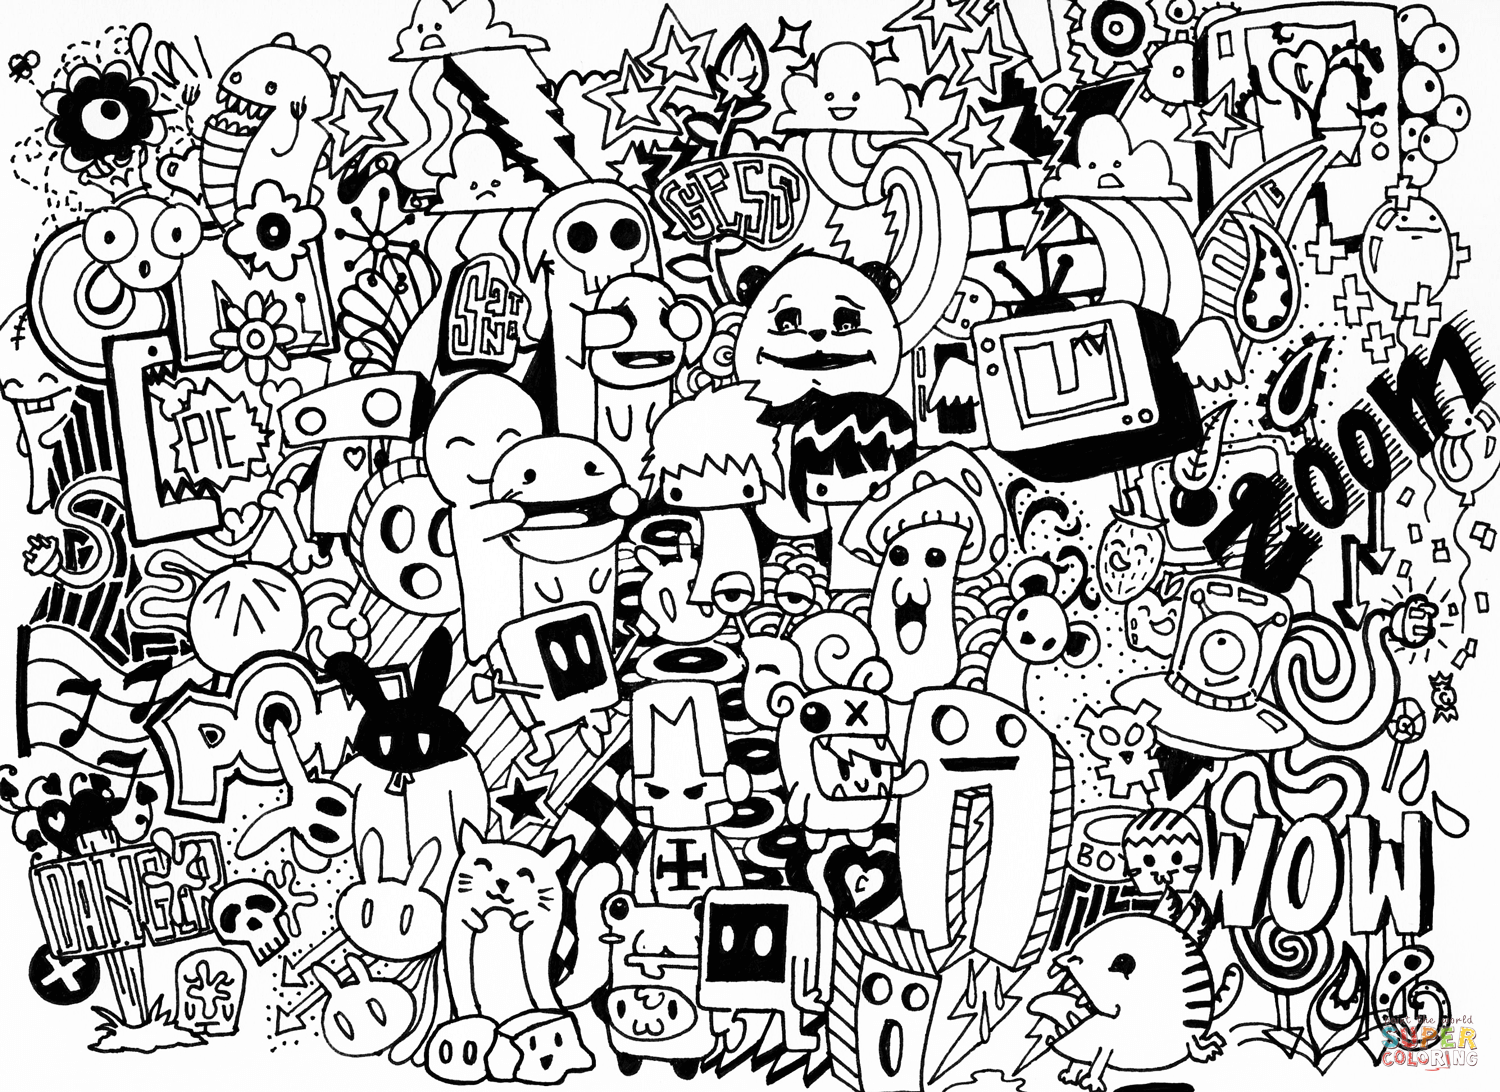 Doodle Art coloring pages | Free Coloring Pages | Doodled in 2019 ...